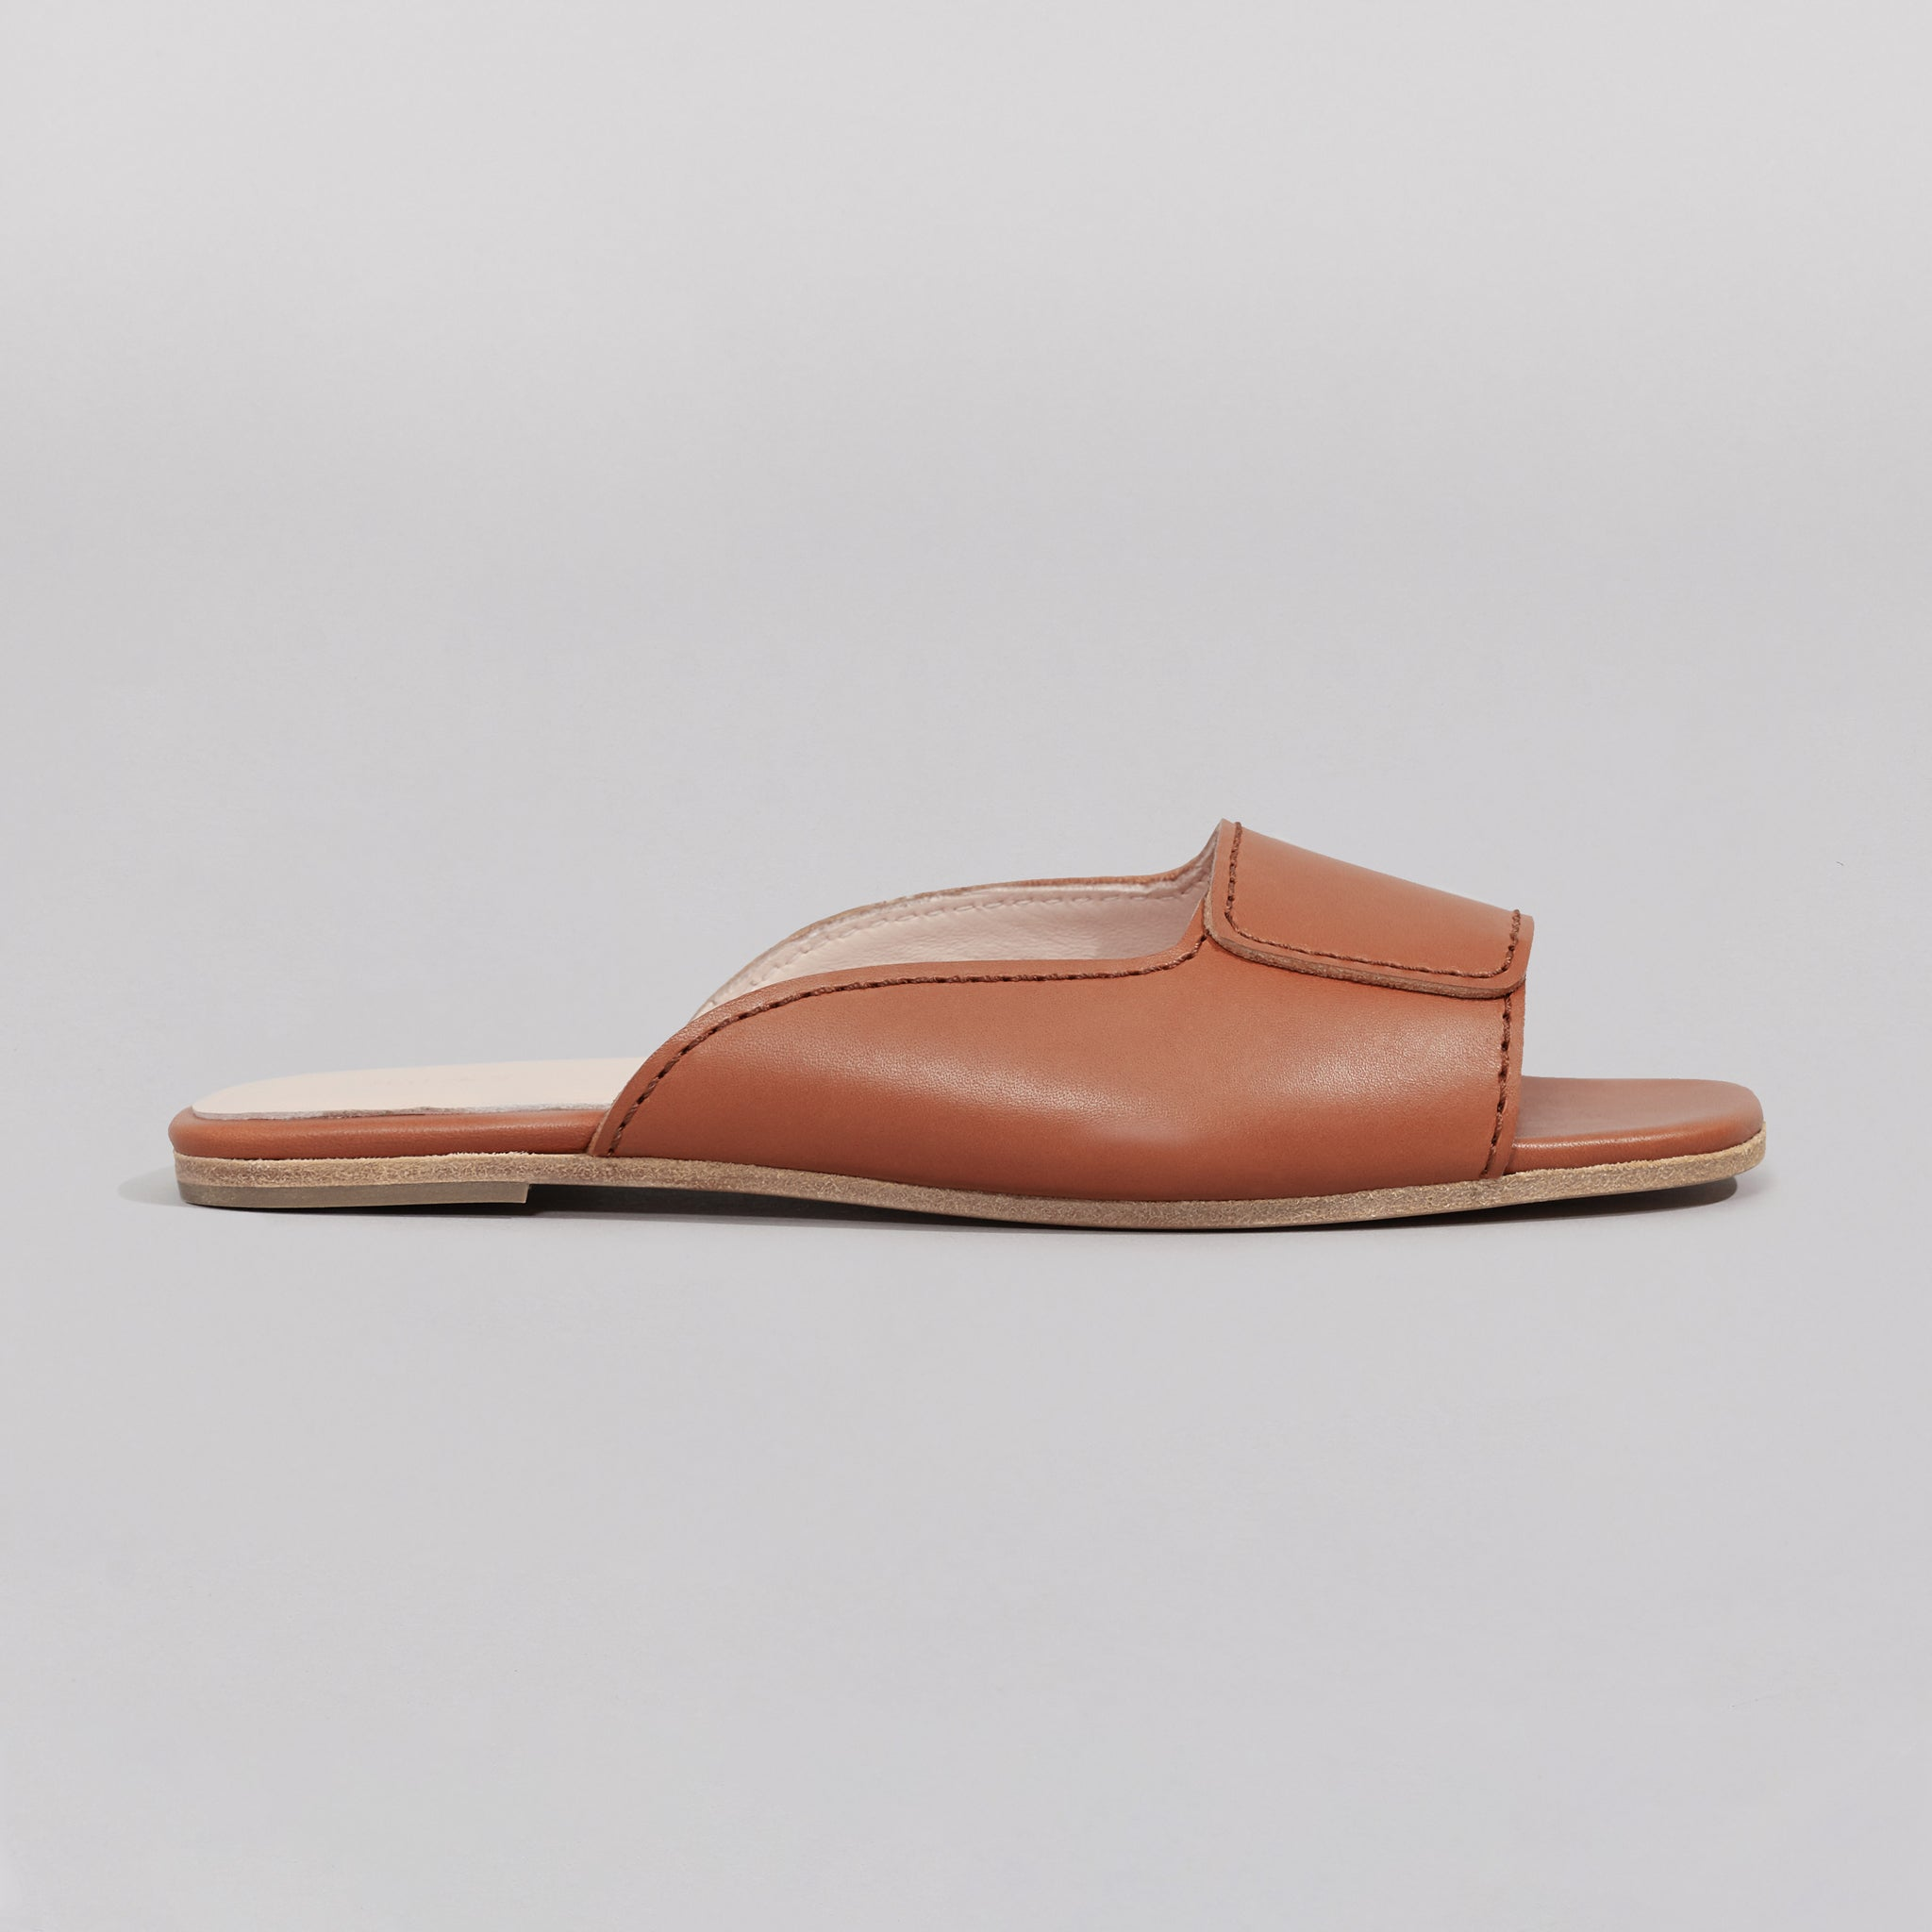 Wilder shoes- brown leather women's slide sandal - Maude - side view